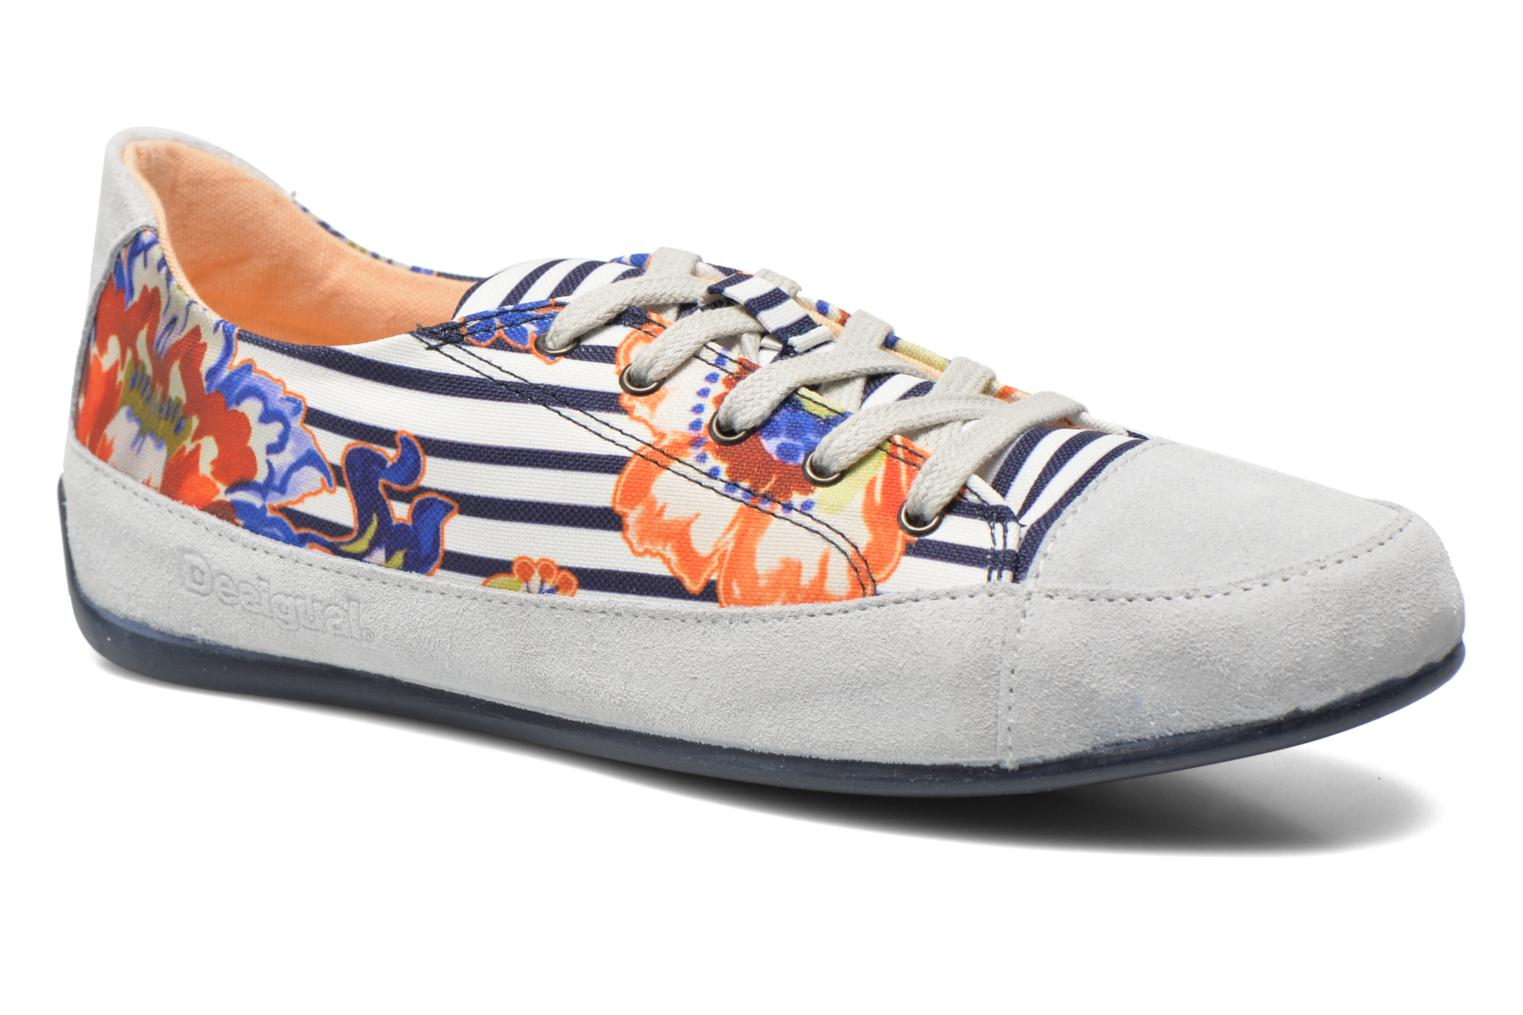 CHAUSSURES - Chaussures à lacetsDesigual qdawooA